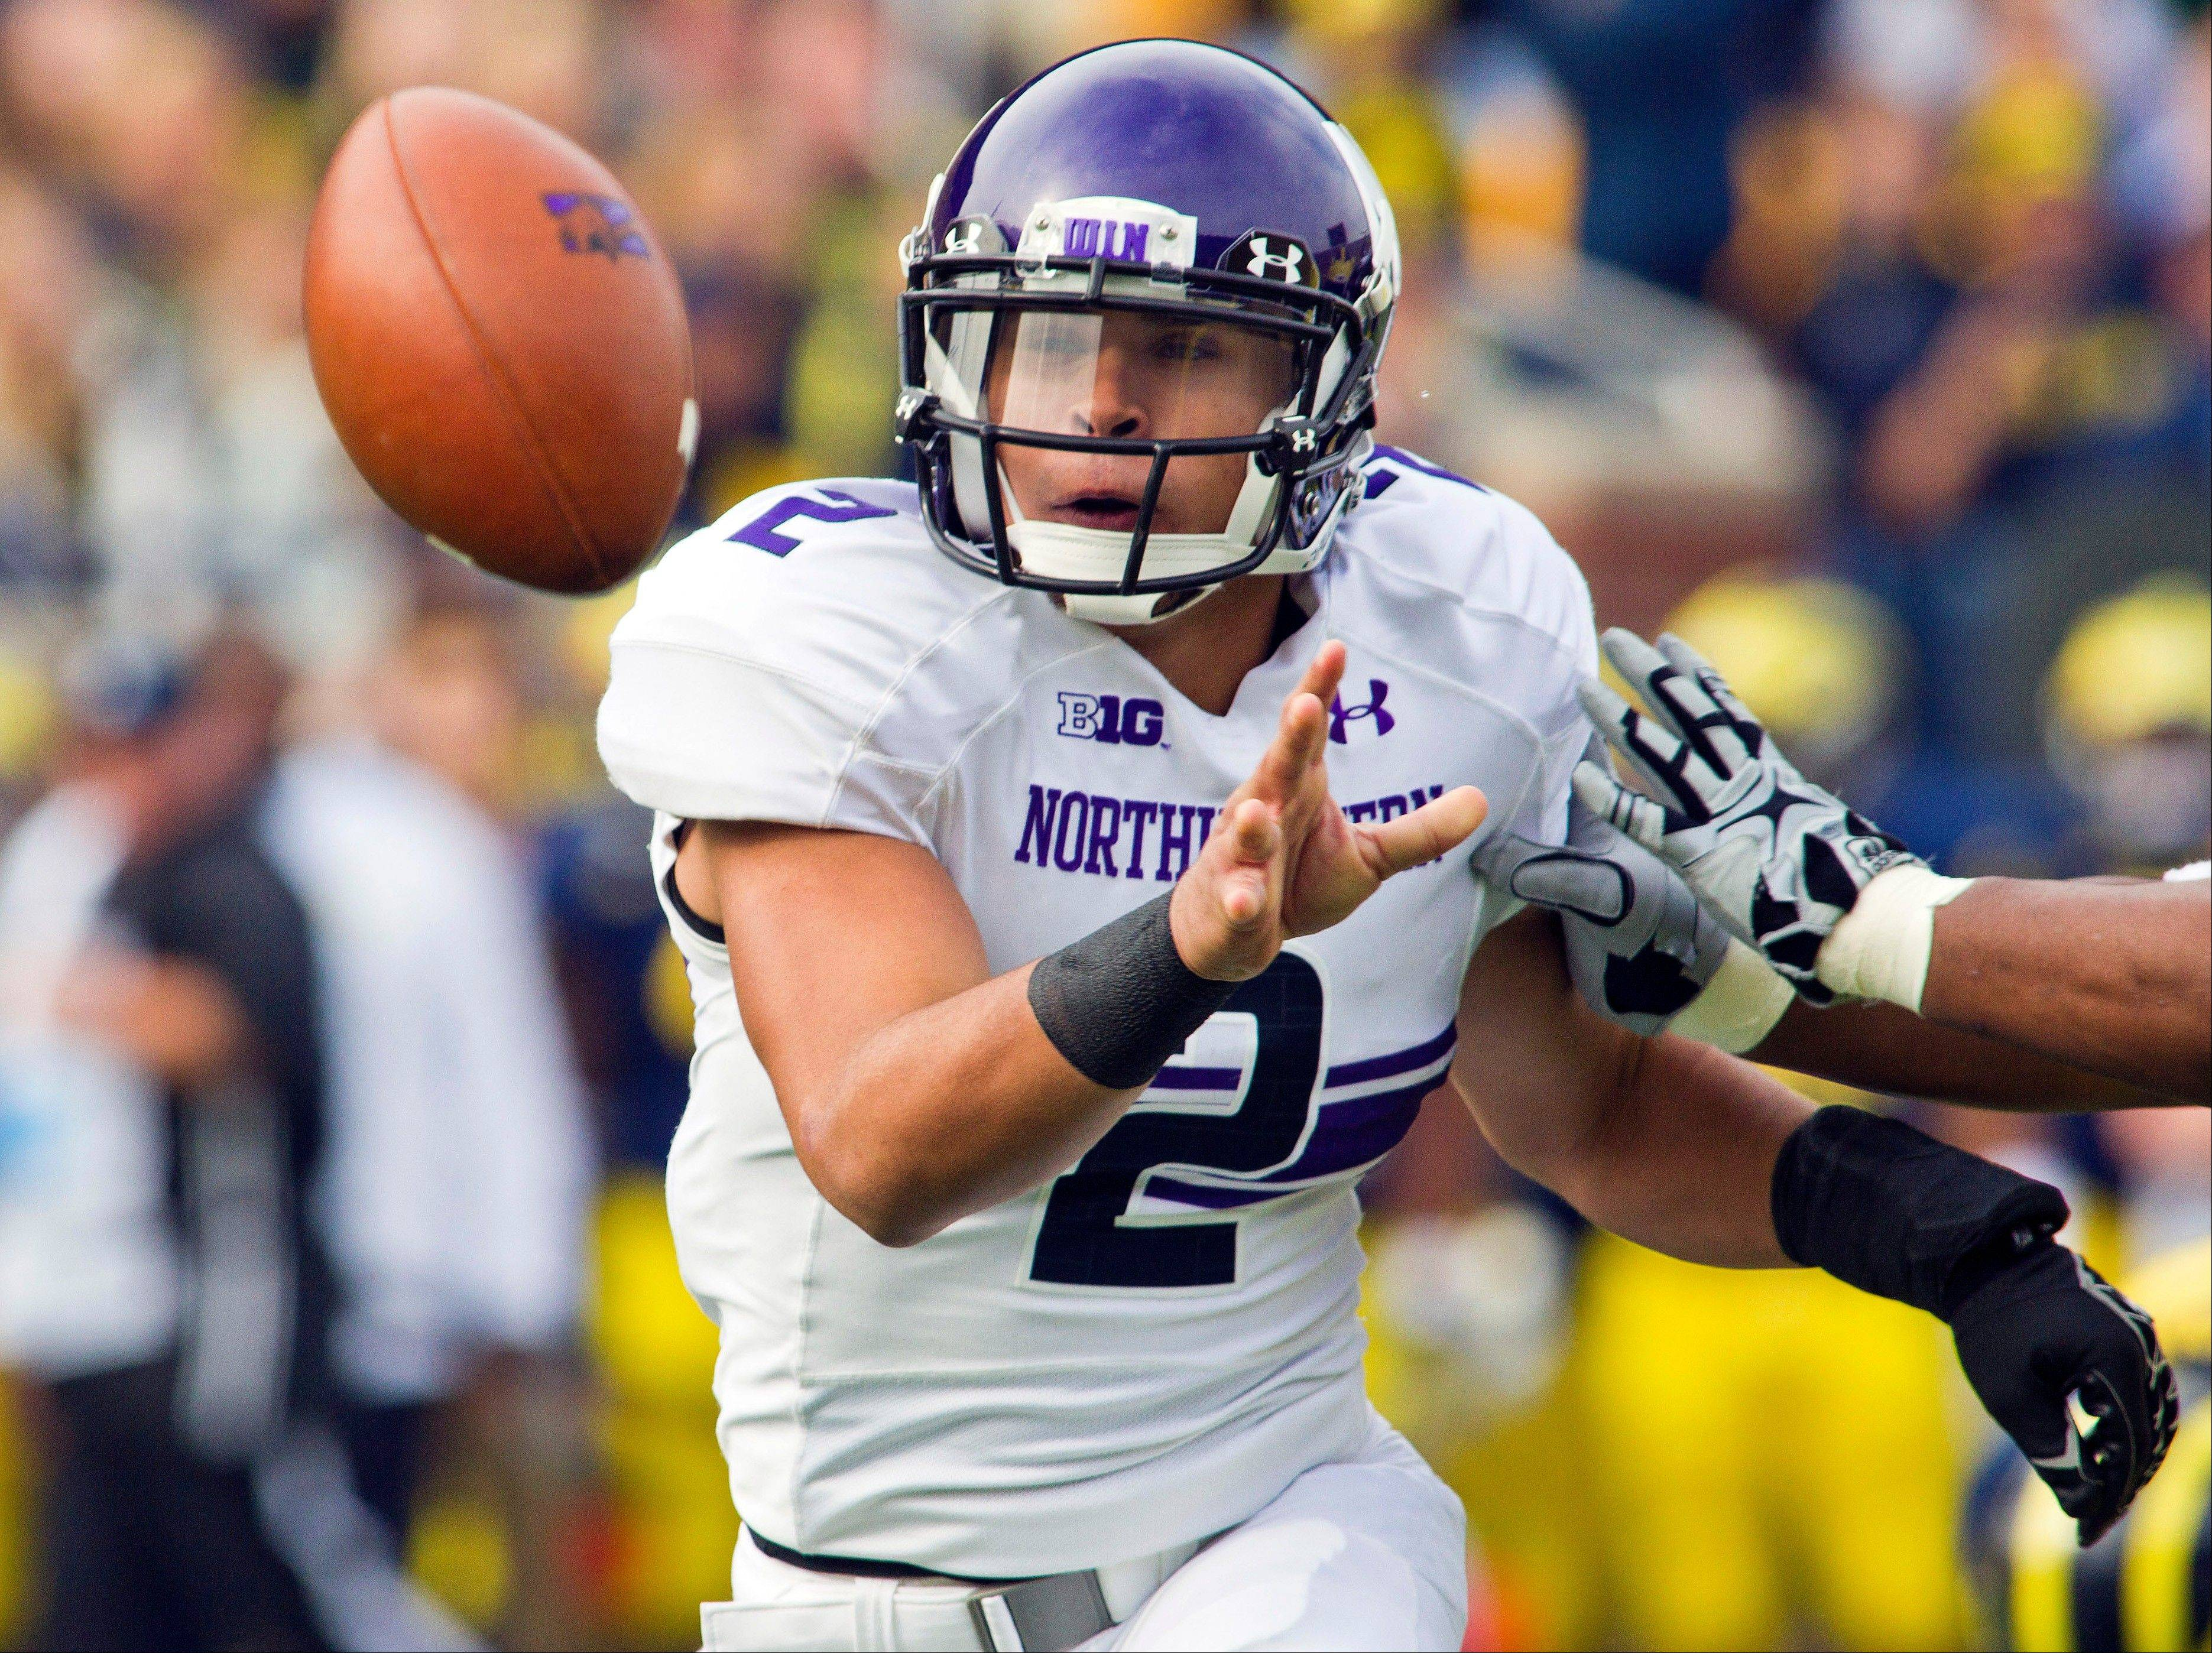 Northwestern quarterback Kain Colter pitches the ball toward a running back Saturday during the first quarter against Michigan in Ann Arbor.